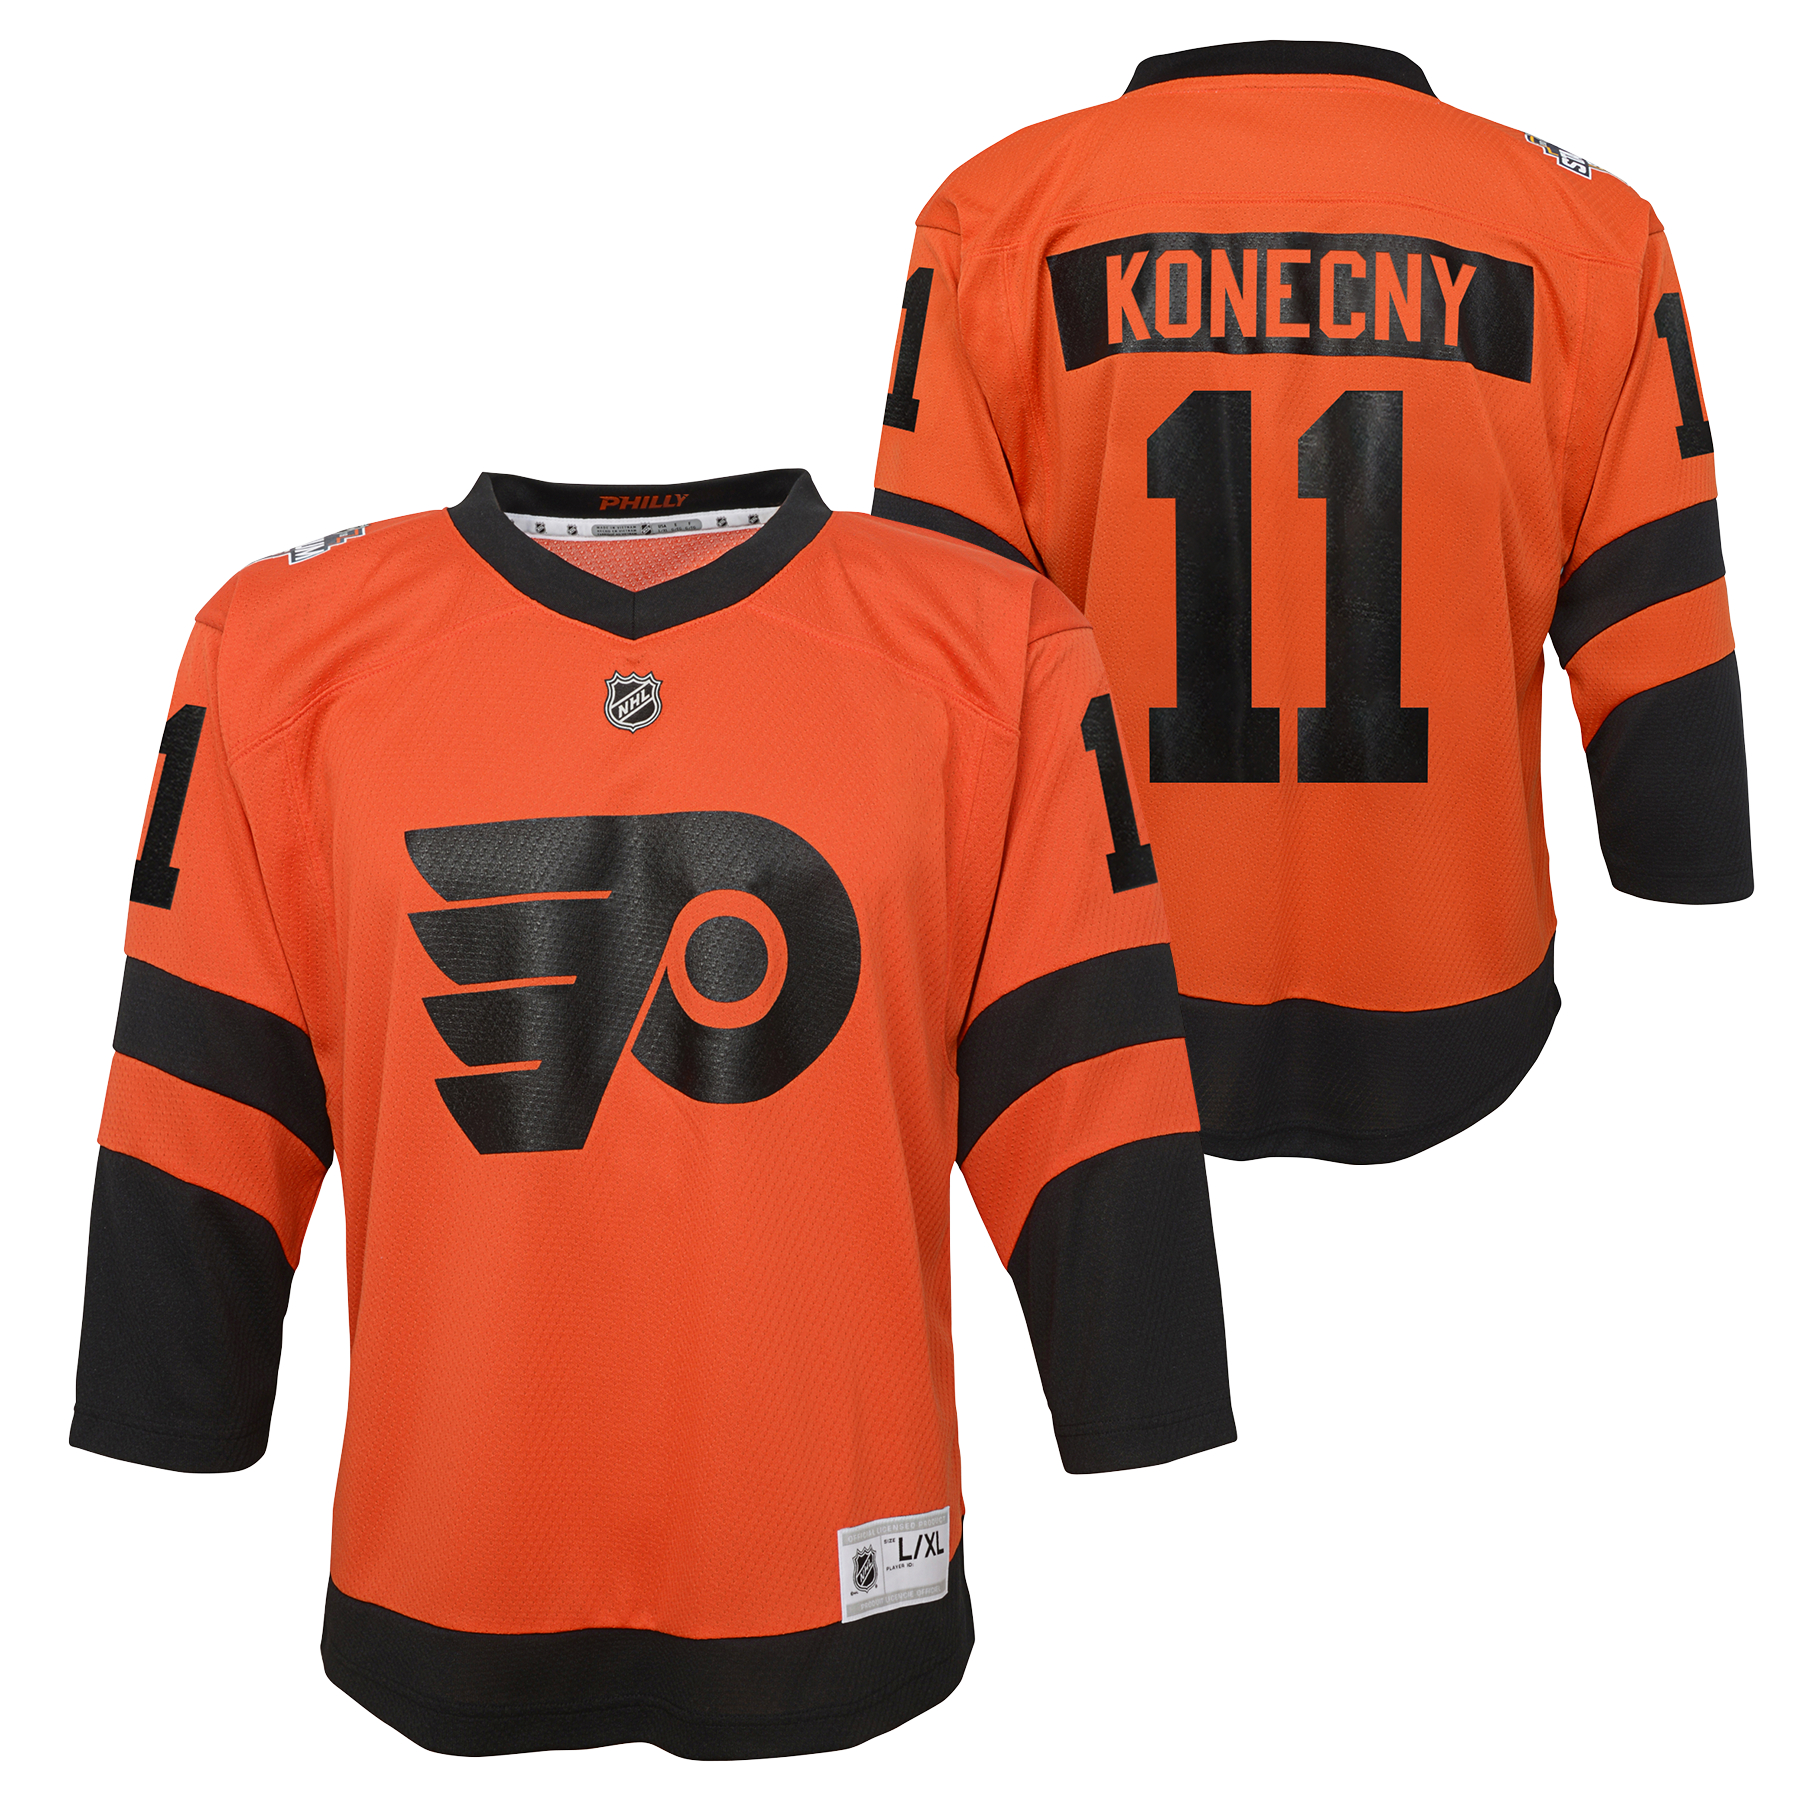 Philadelphia Flyers Youth 2019 Stadium Series Konecny Jersey by Outerstuff e86fda4ab